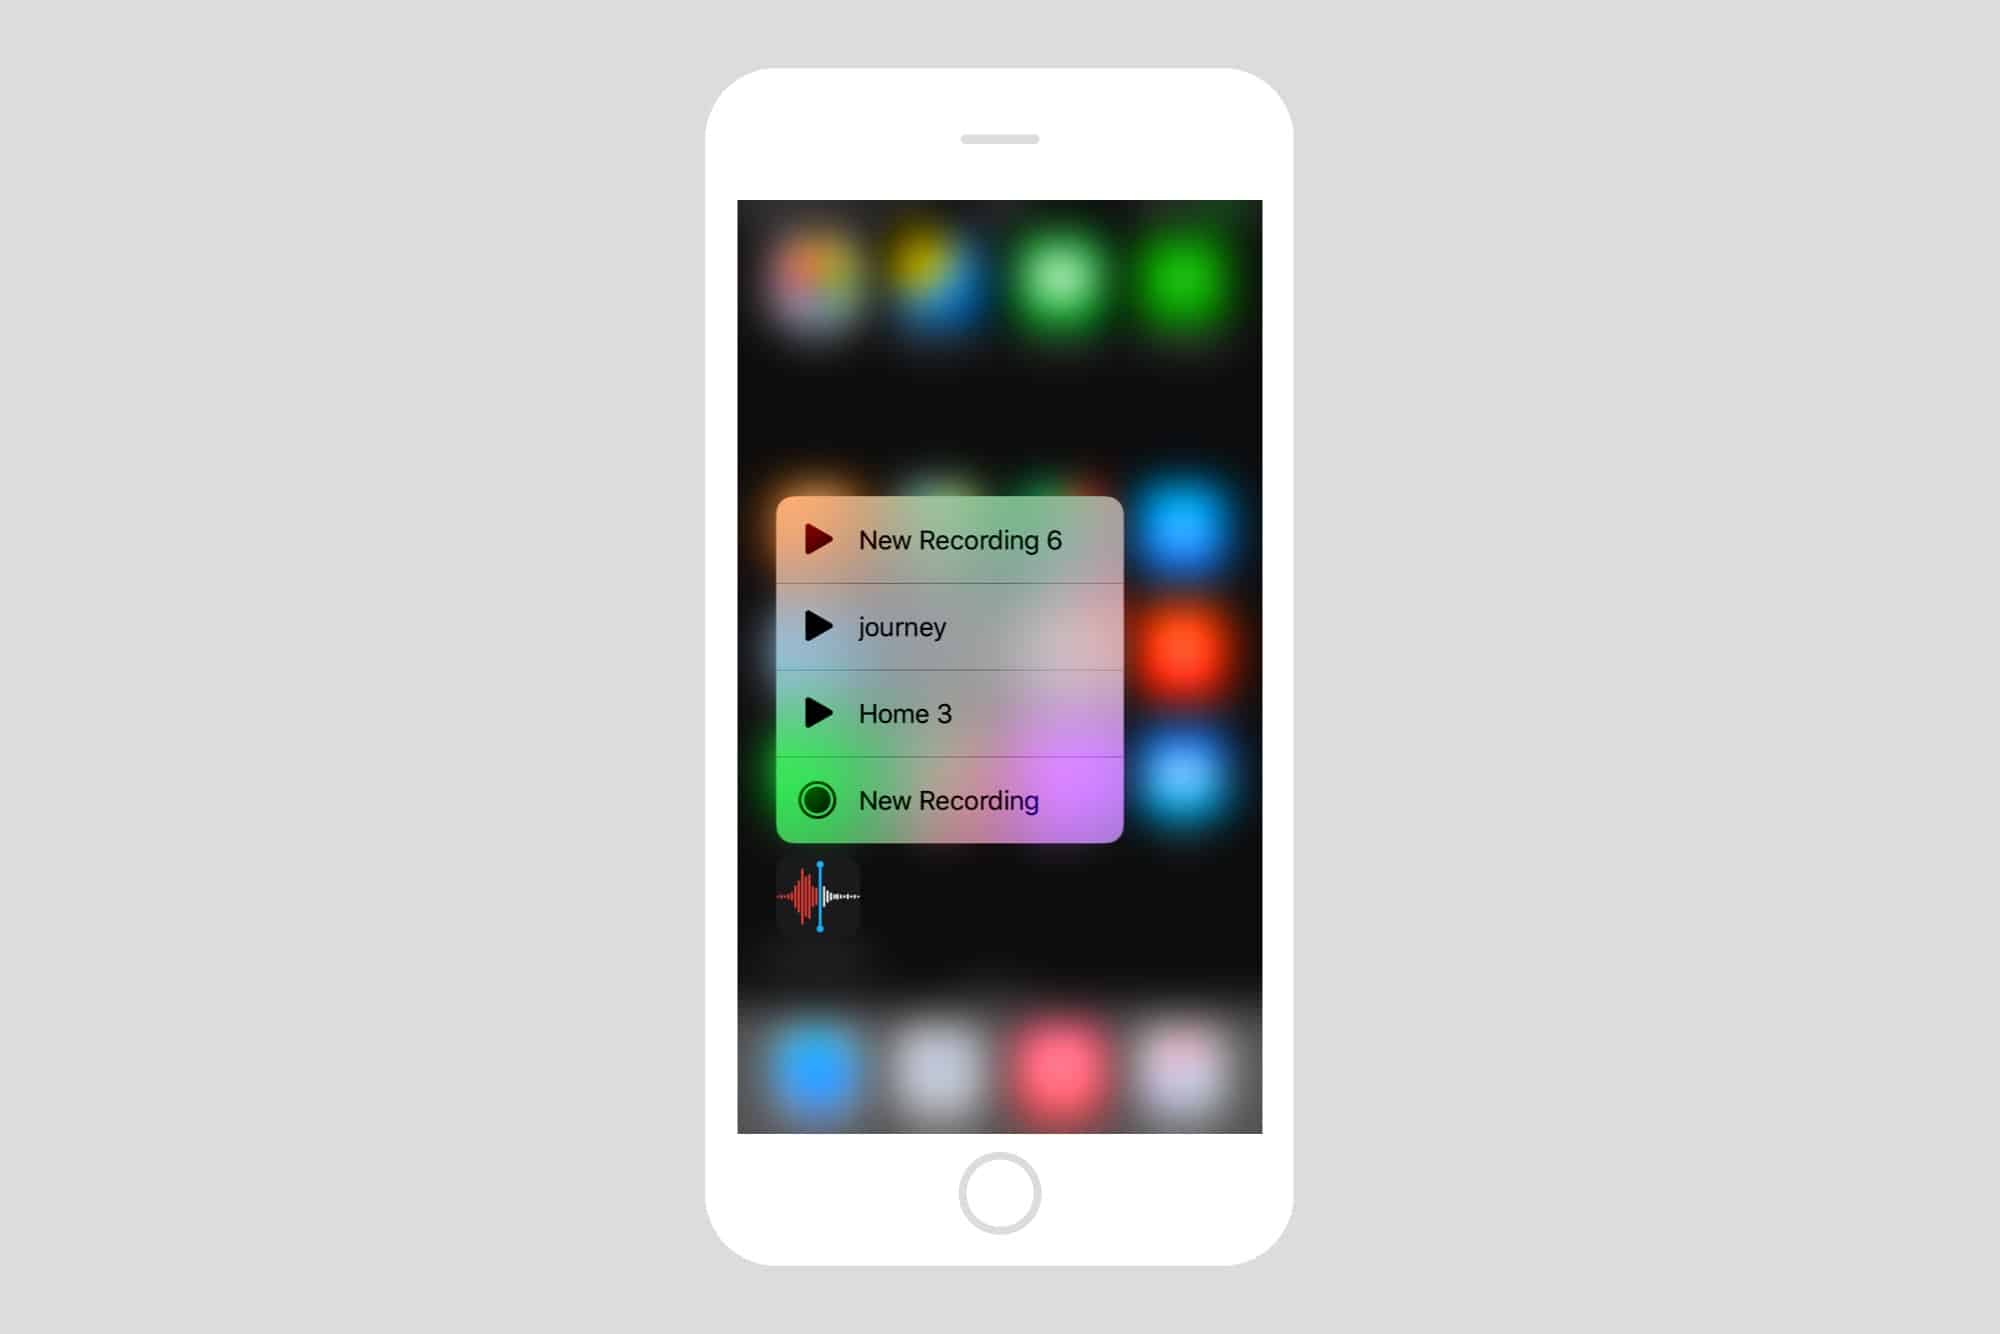 The 3D Touch widget for Voice Memos in iOS 12.